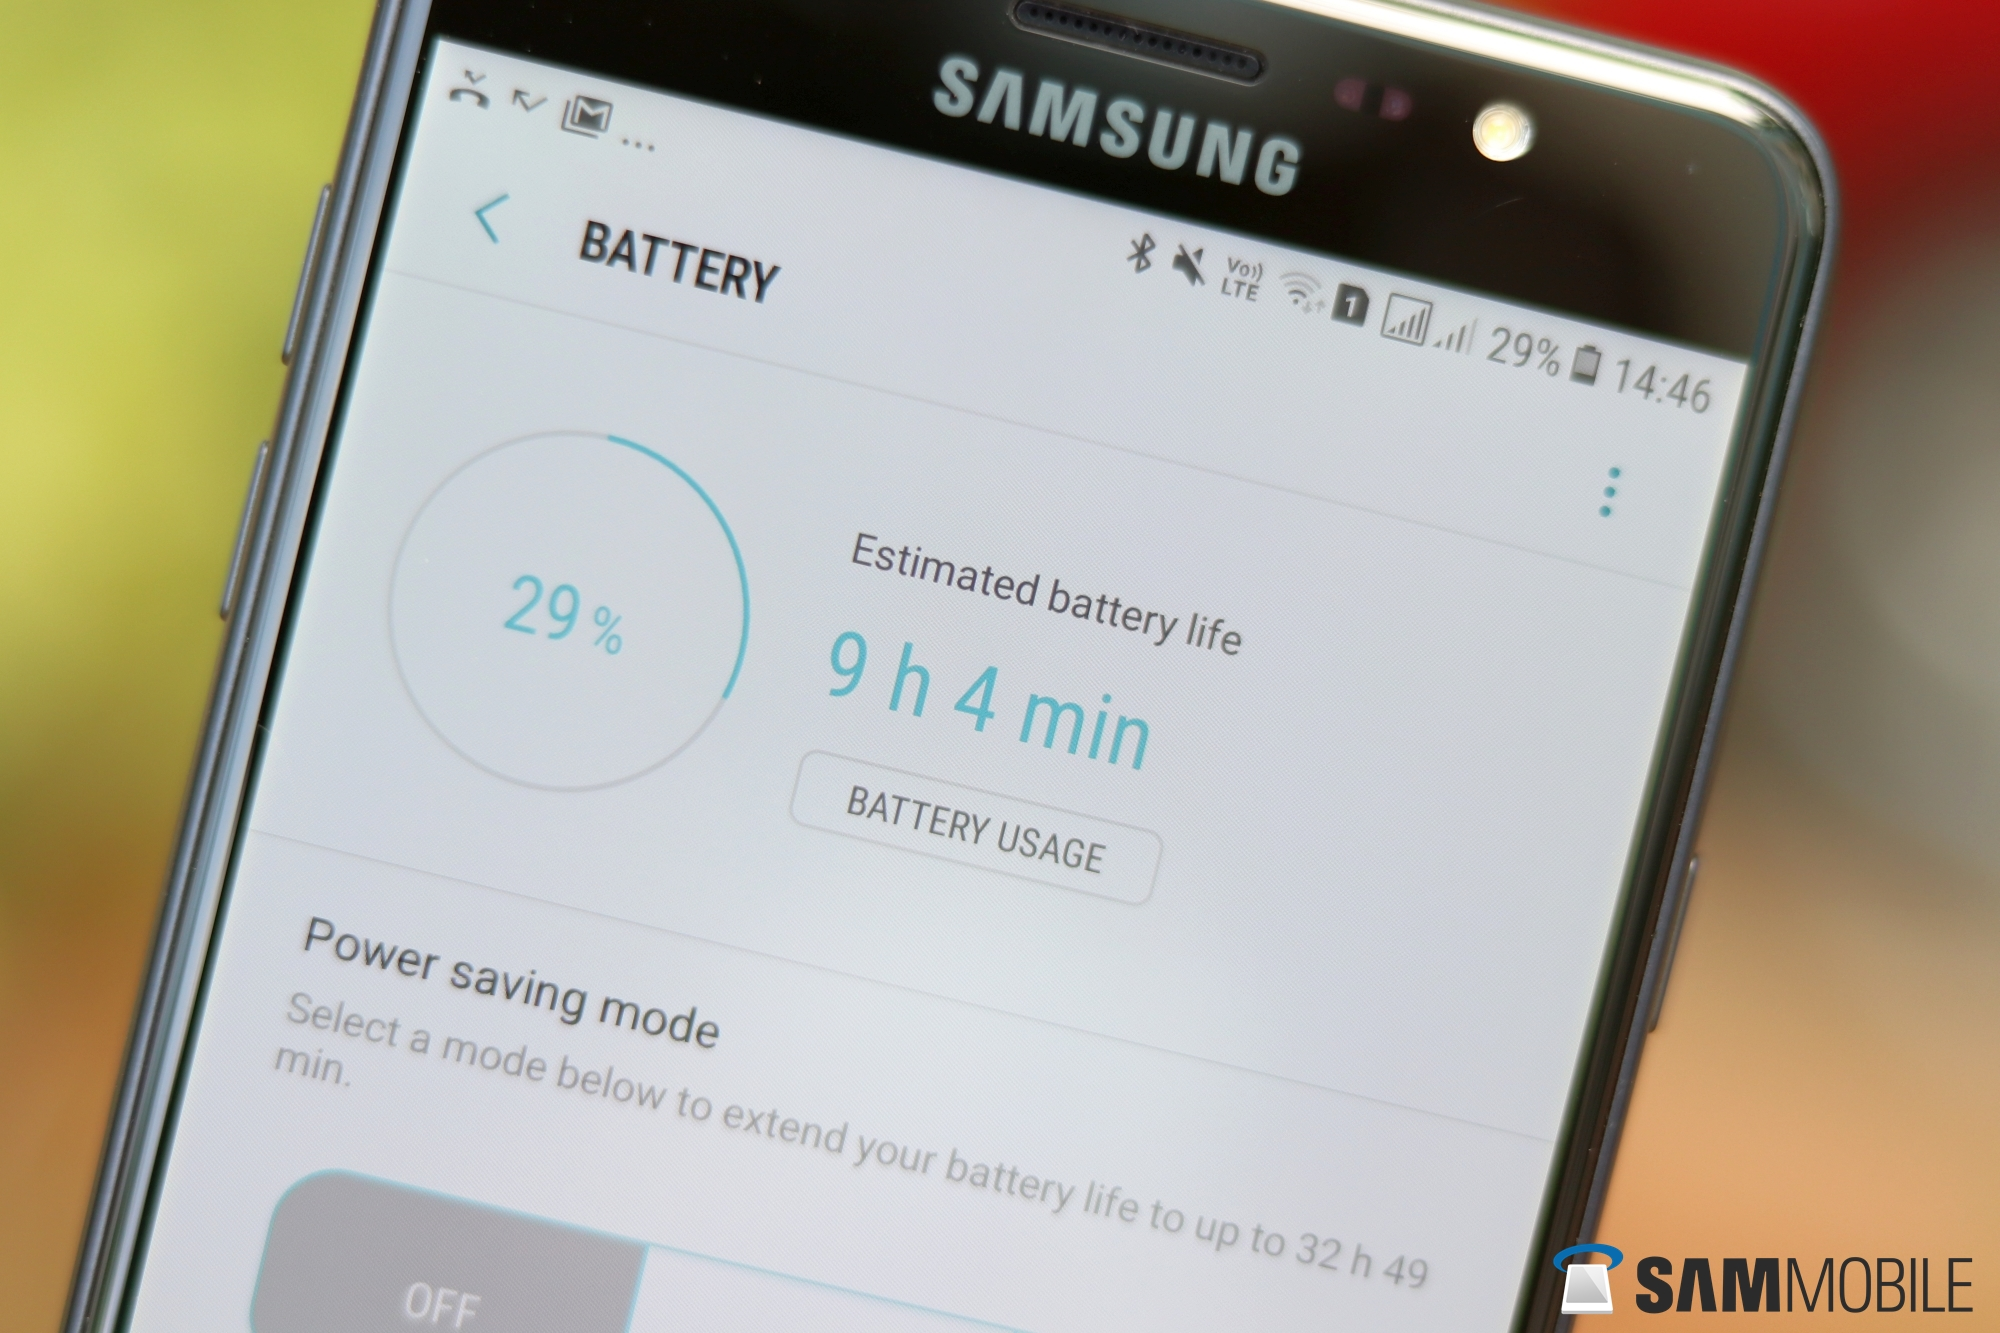 Galaxy J7 Max review: Excellent budget phone held back by